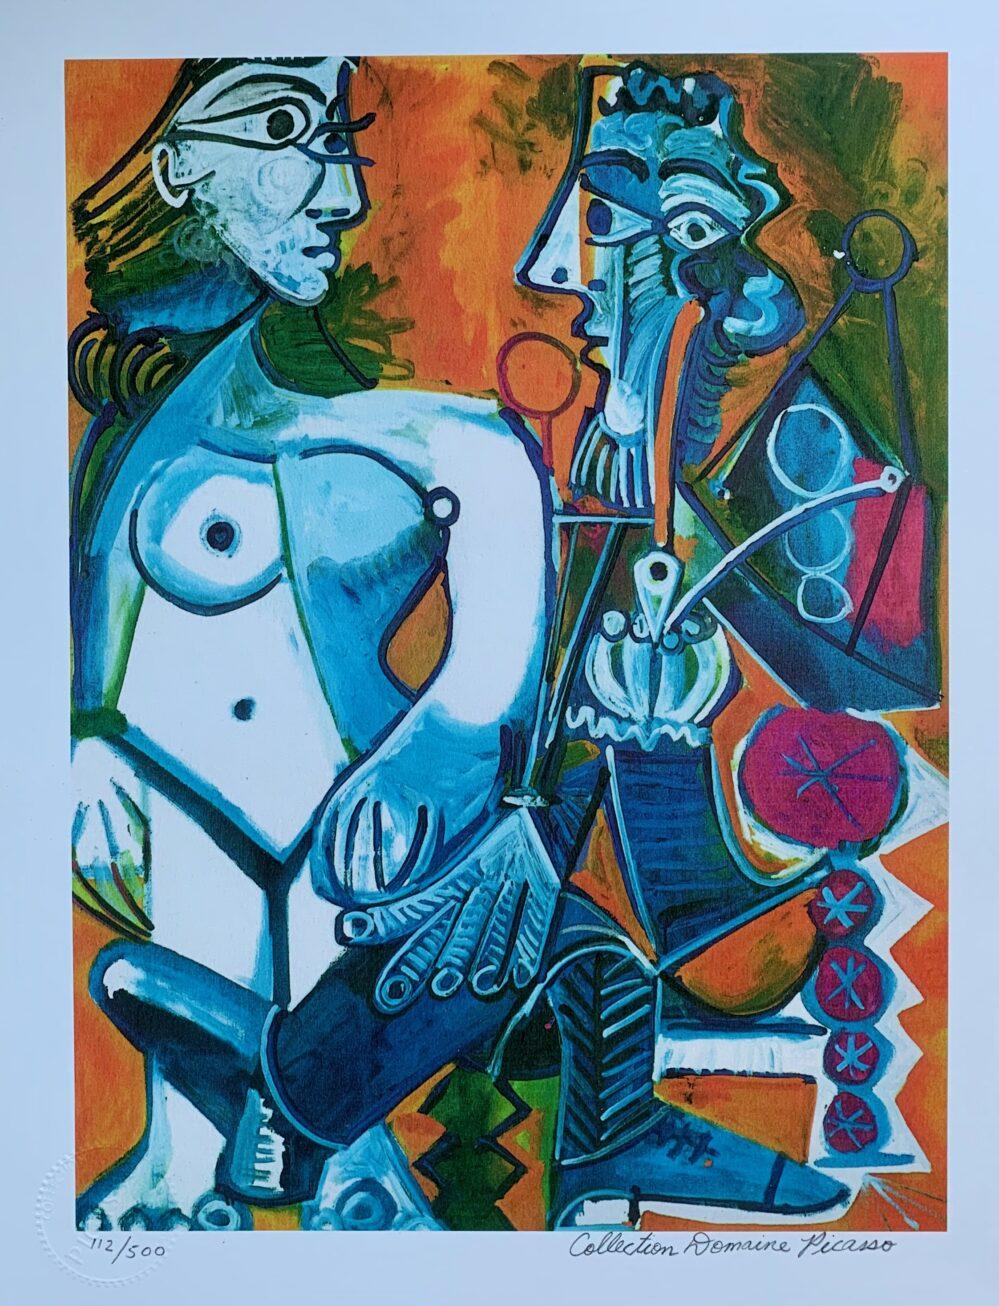 Pablo Picasso MAN WITH NUDE WOMAN Estate Signed Limited Edition Small Giclee